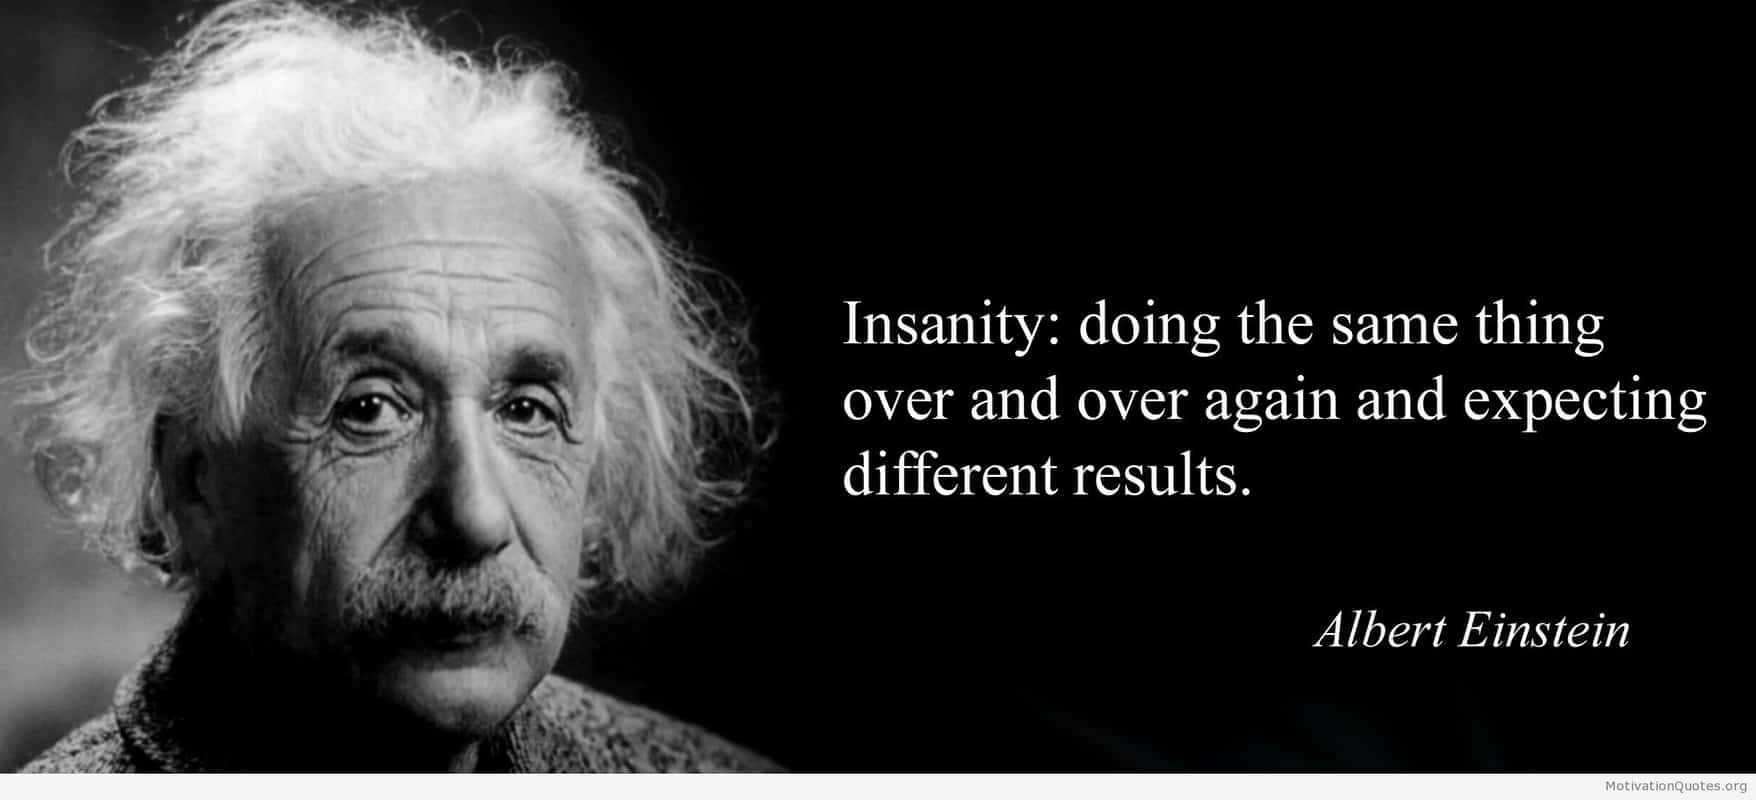 Quote from Albert Einstein